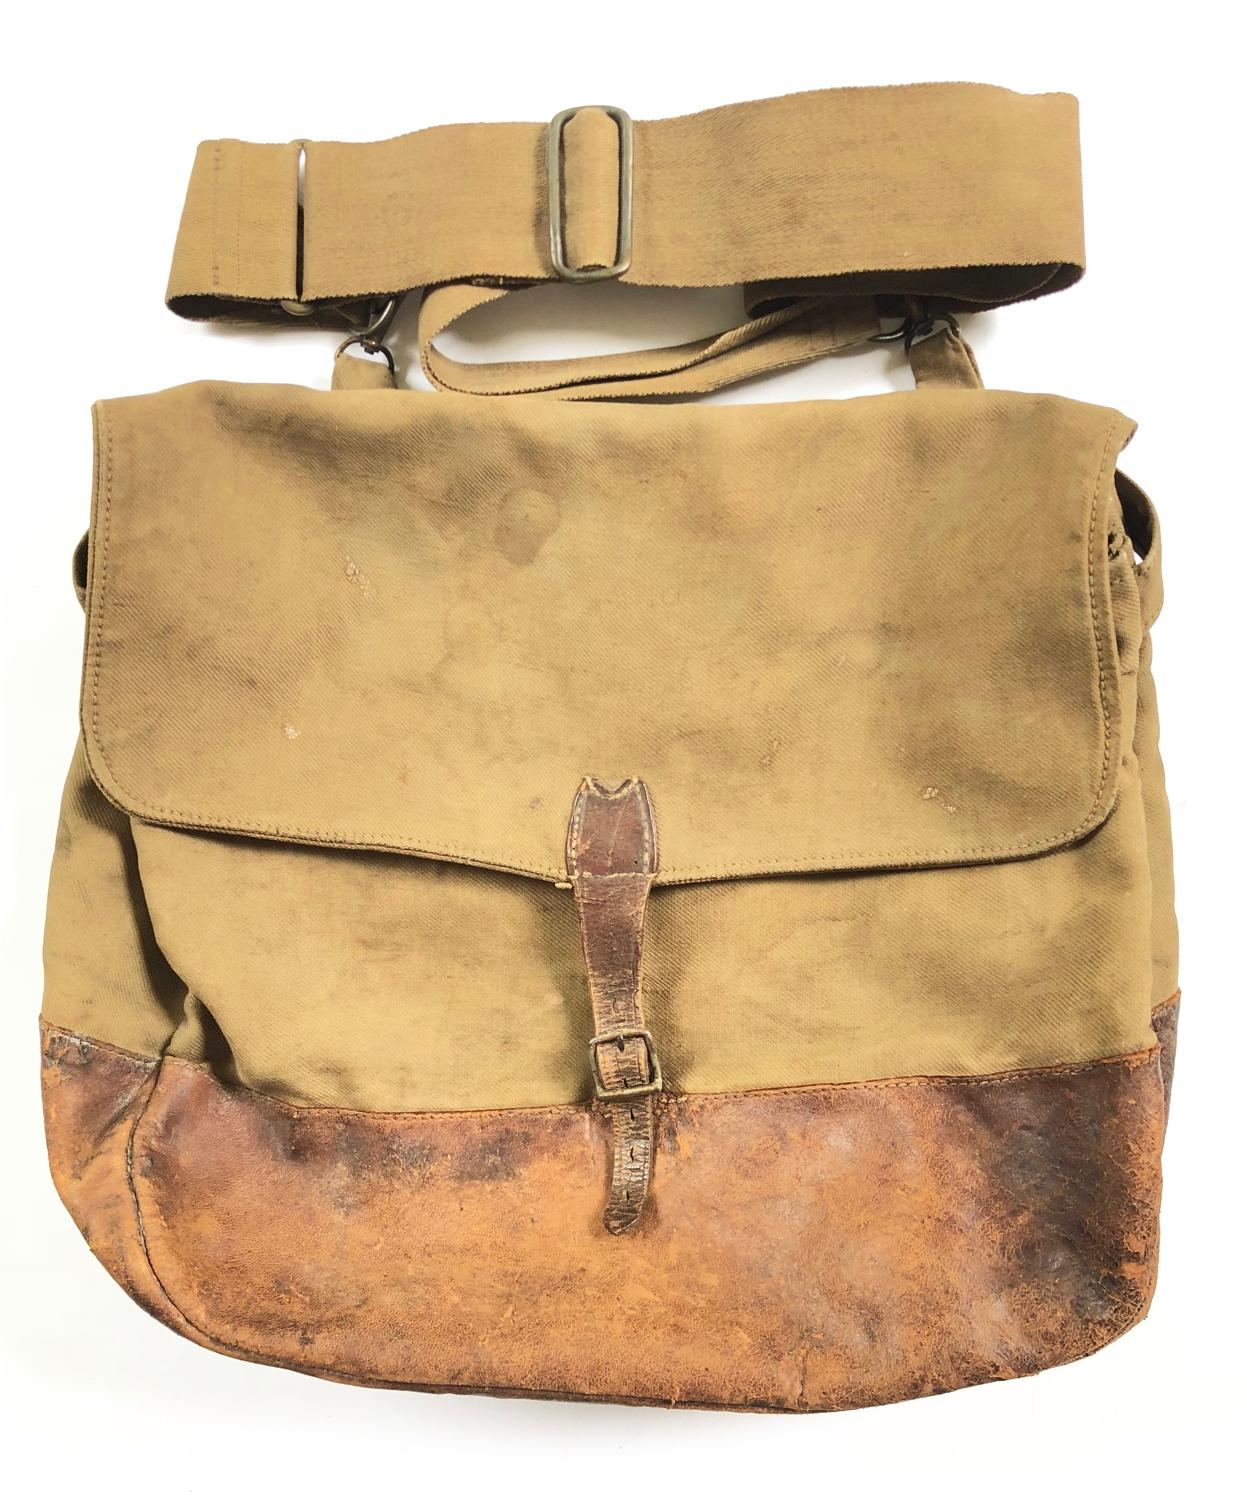 WW1 Period British Officer's Side Bag.